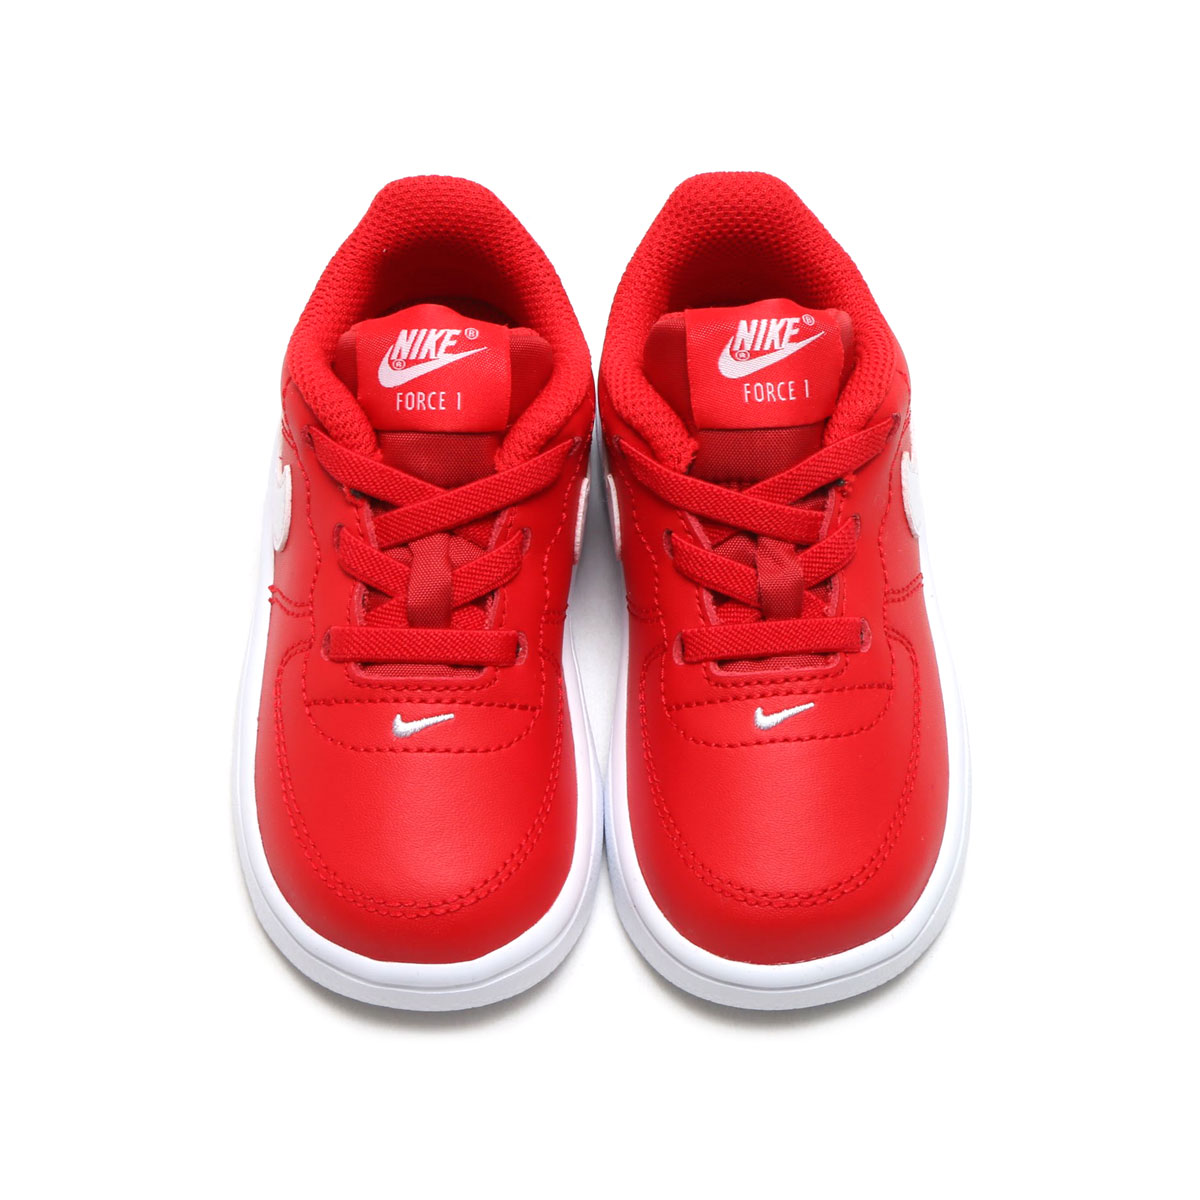 brand new 682f2 6873b NIKE FORCE 1  18 (TD) (Nike force 1 18 TD) (UNIVERSITY RED WHITE) 18SP-I